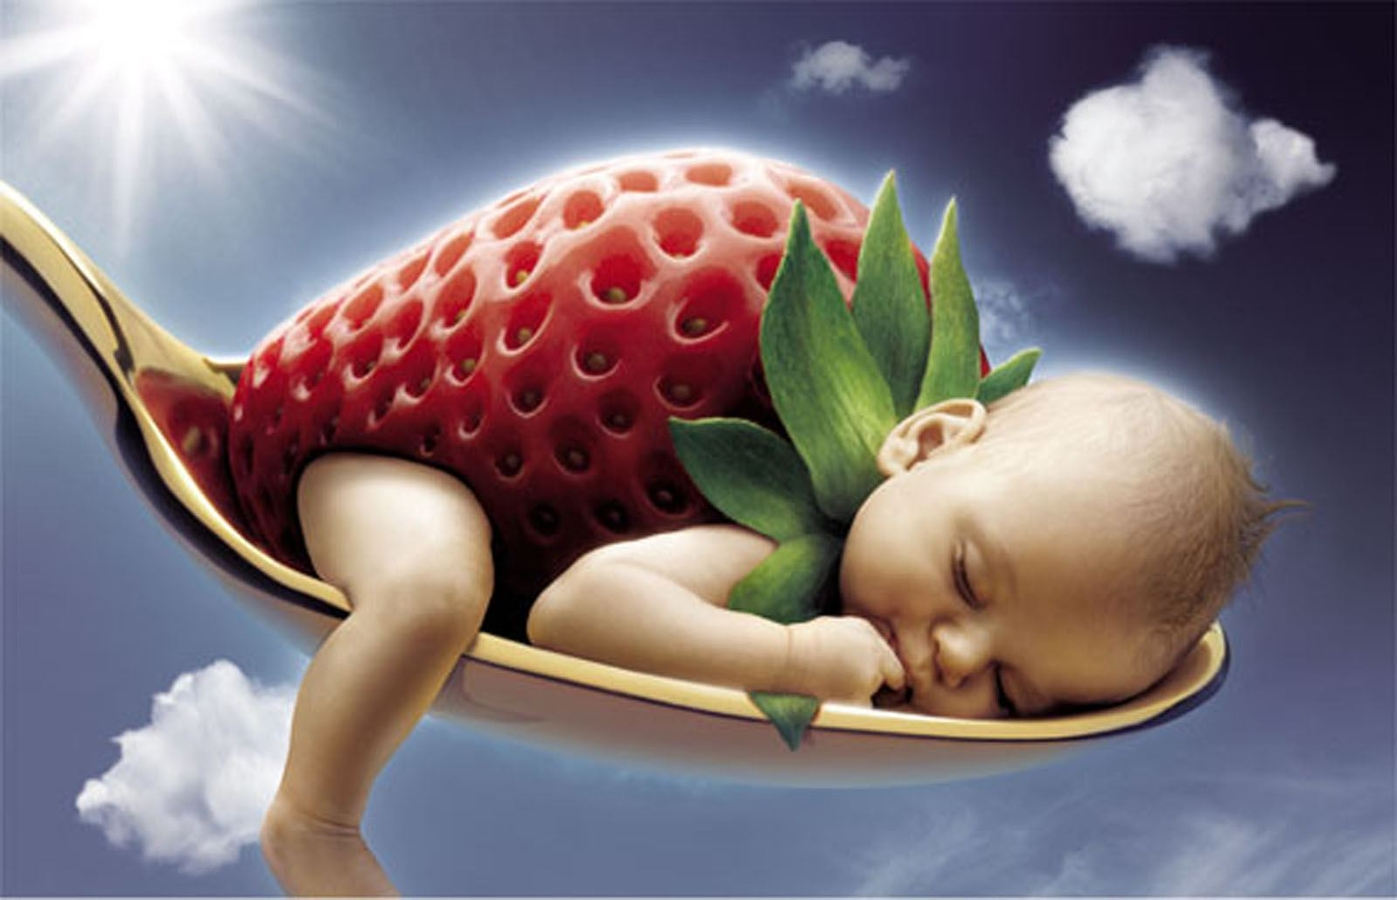 Cute Baby Sleeping Funny Image Wallpaper